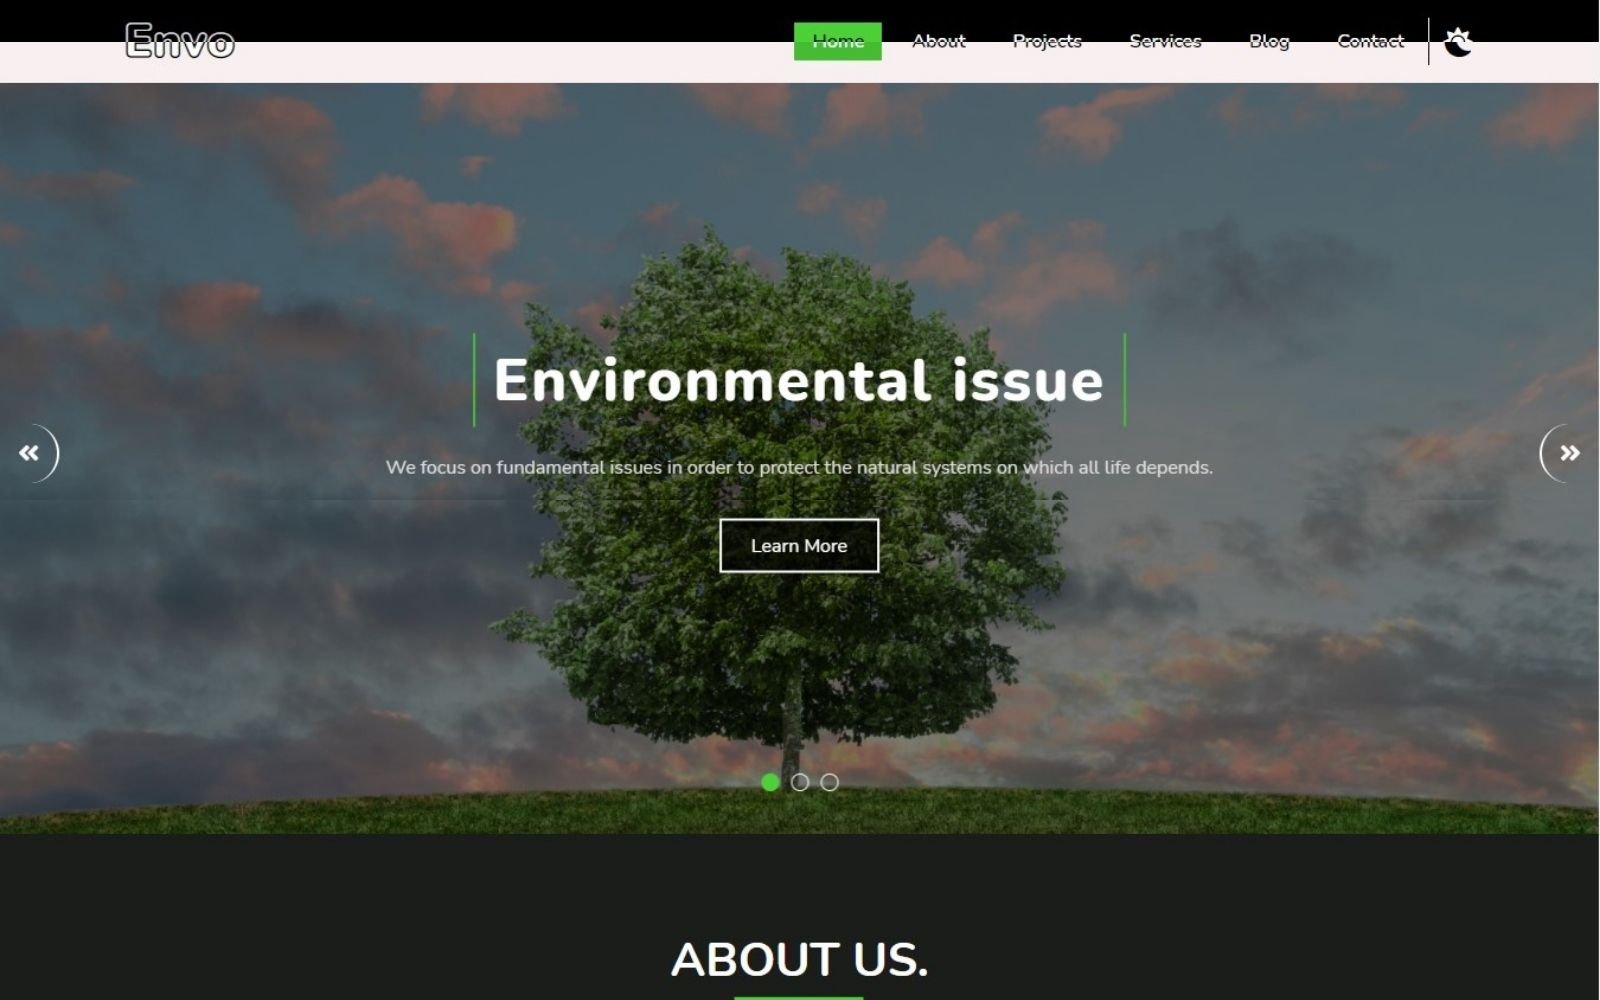 Envo - Environmental Charity Landing Page Template